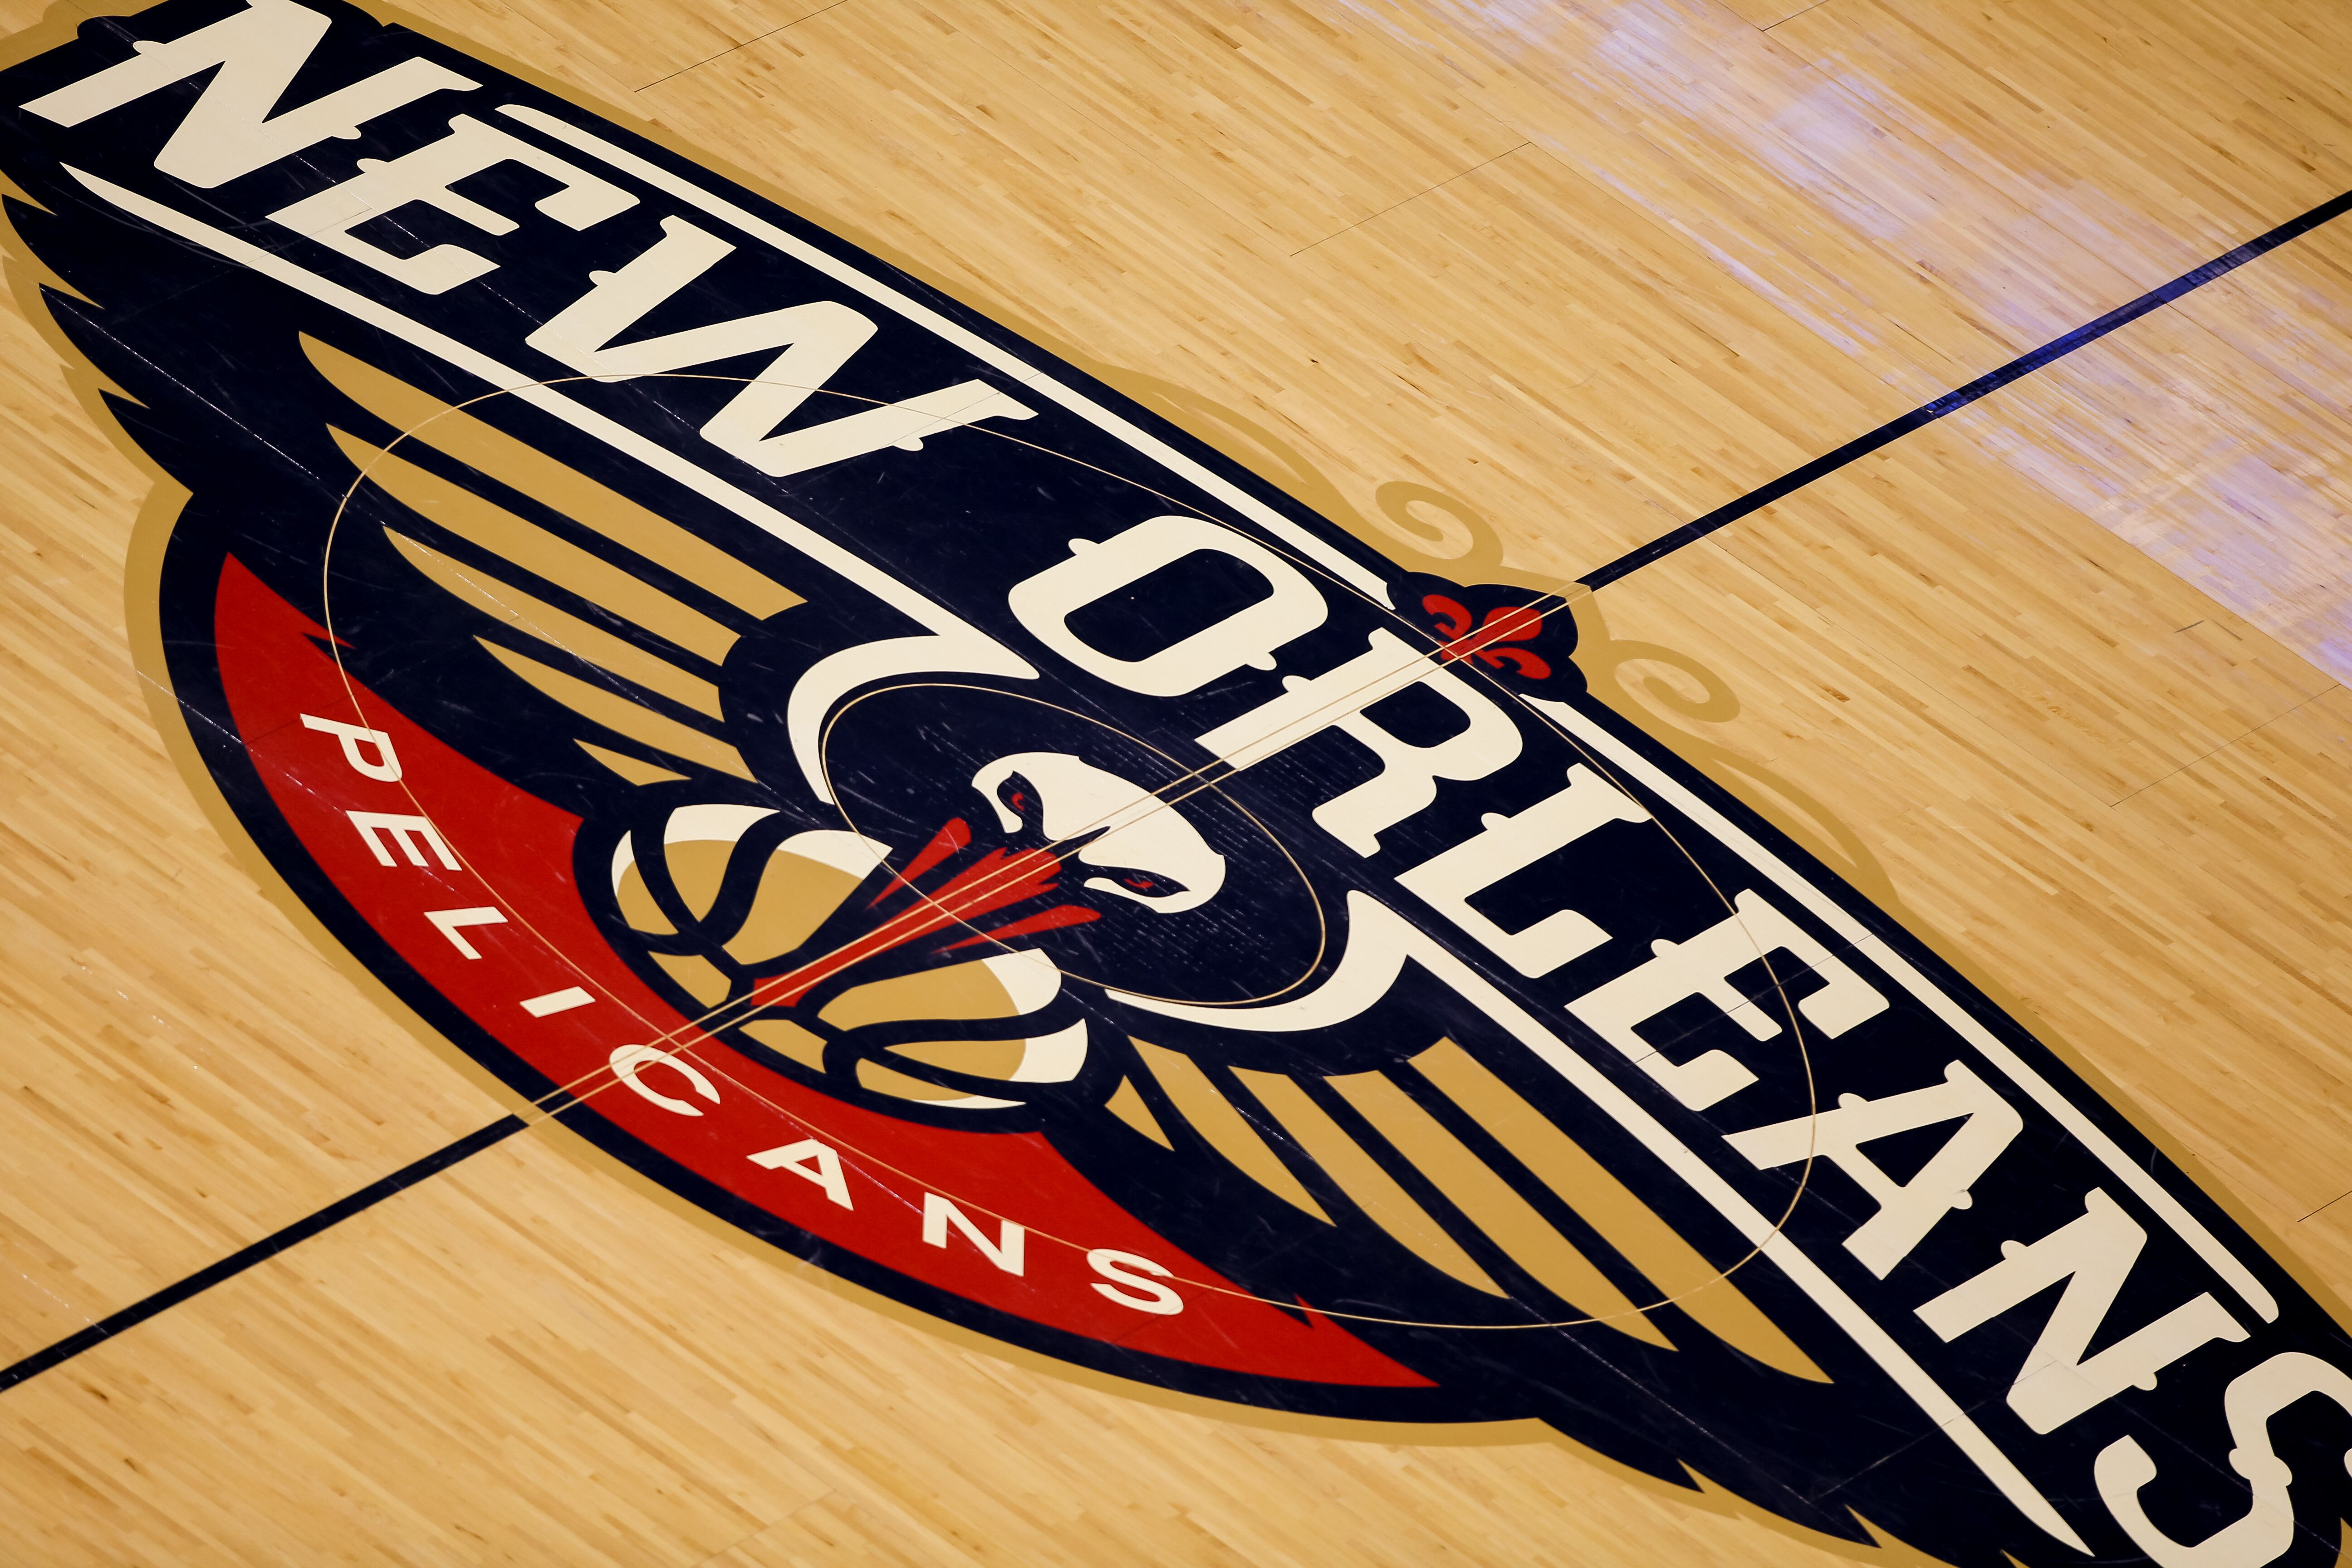 599211686-nba-nov-22-suns-at-pelicans.jpg